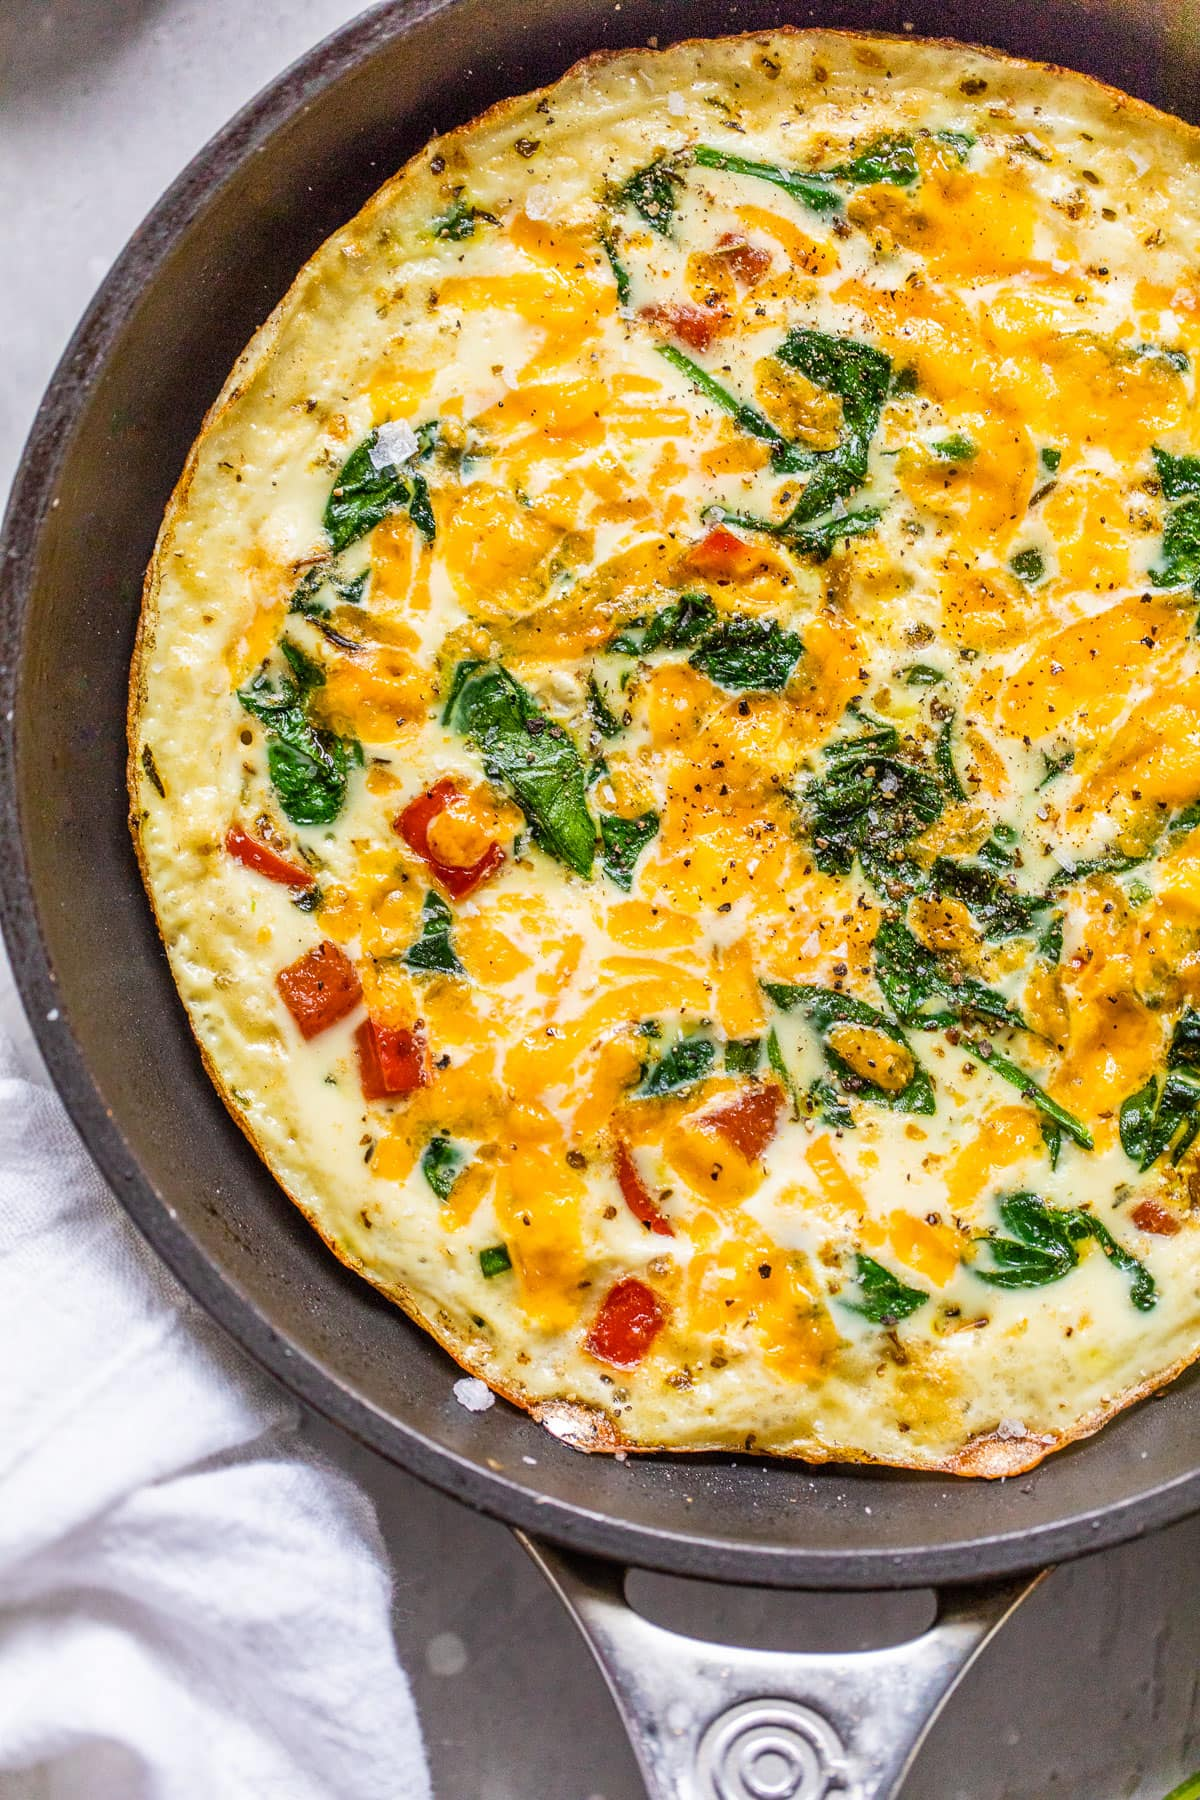 A skillet with healthy egg white frittata